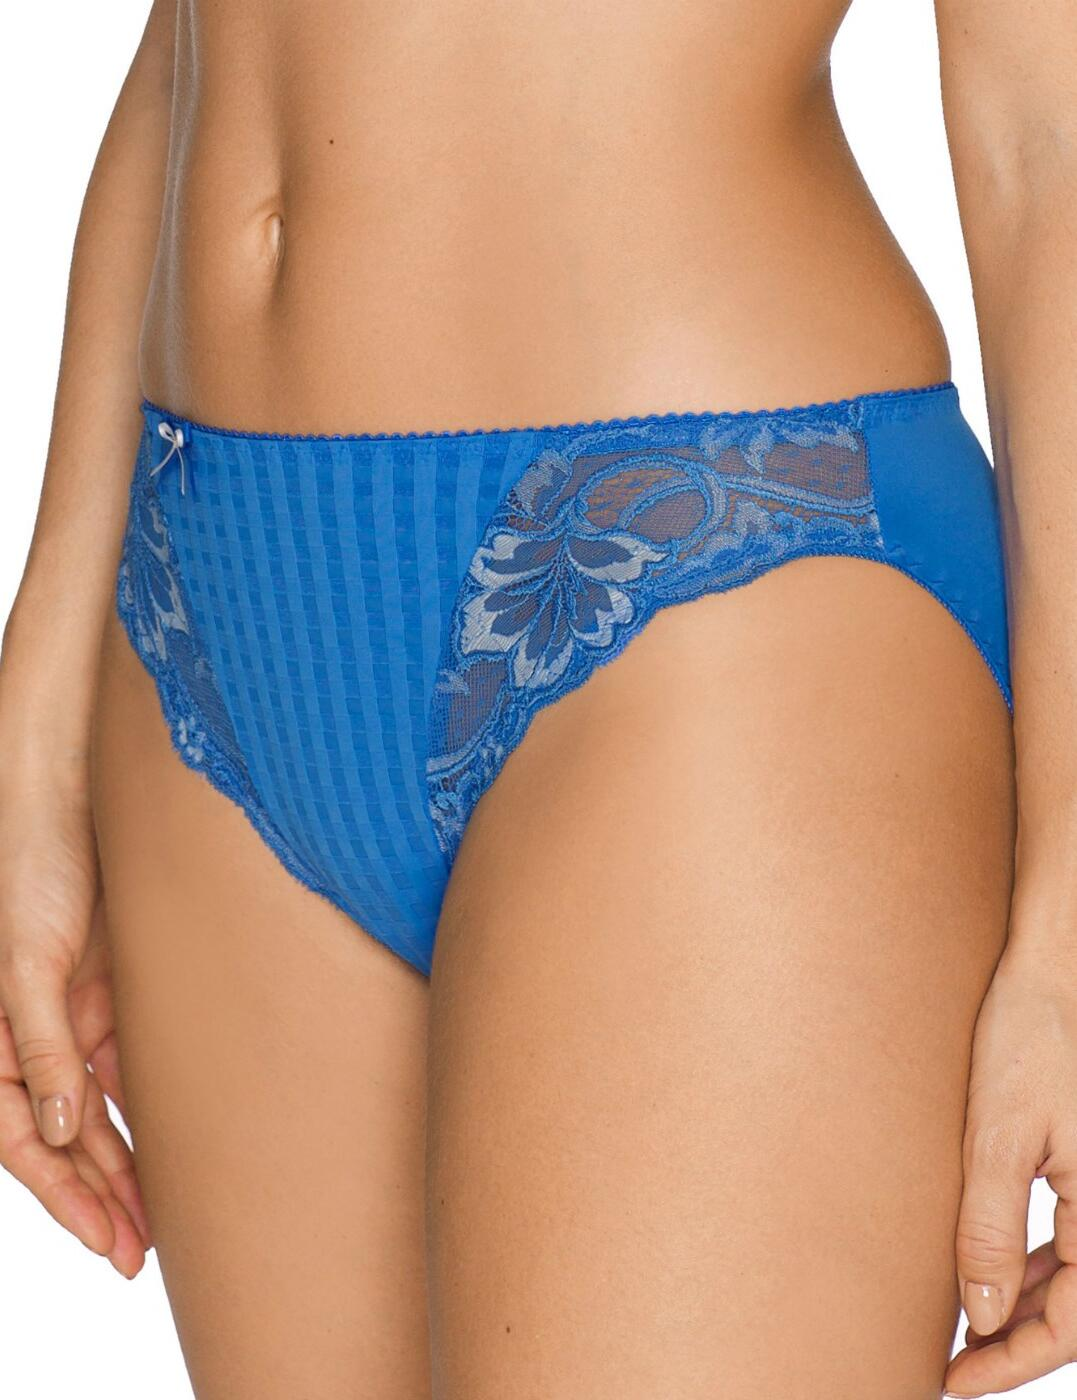 Prima-Donna-Madison-Rio-Briefs-Knickers-0562120-Womens-Luxury-Lingerie thumbnail 6